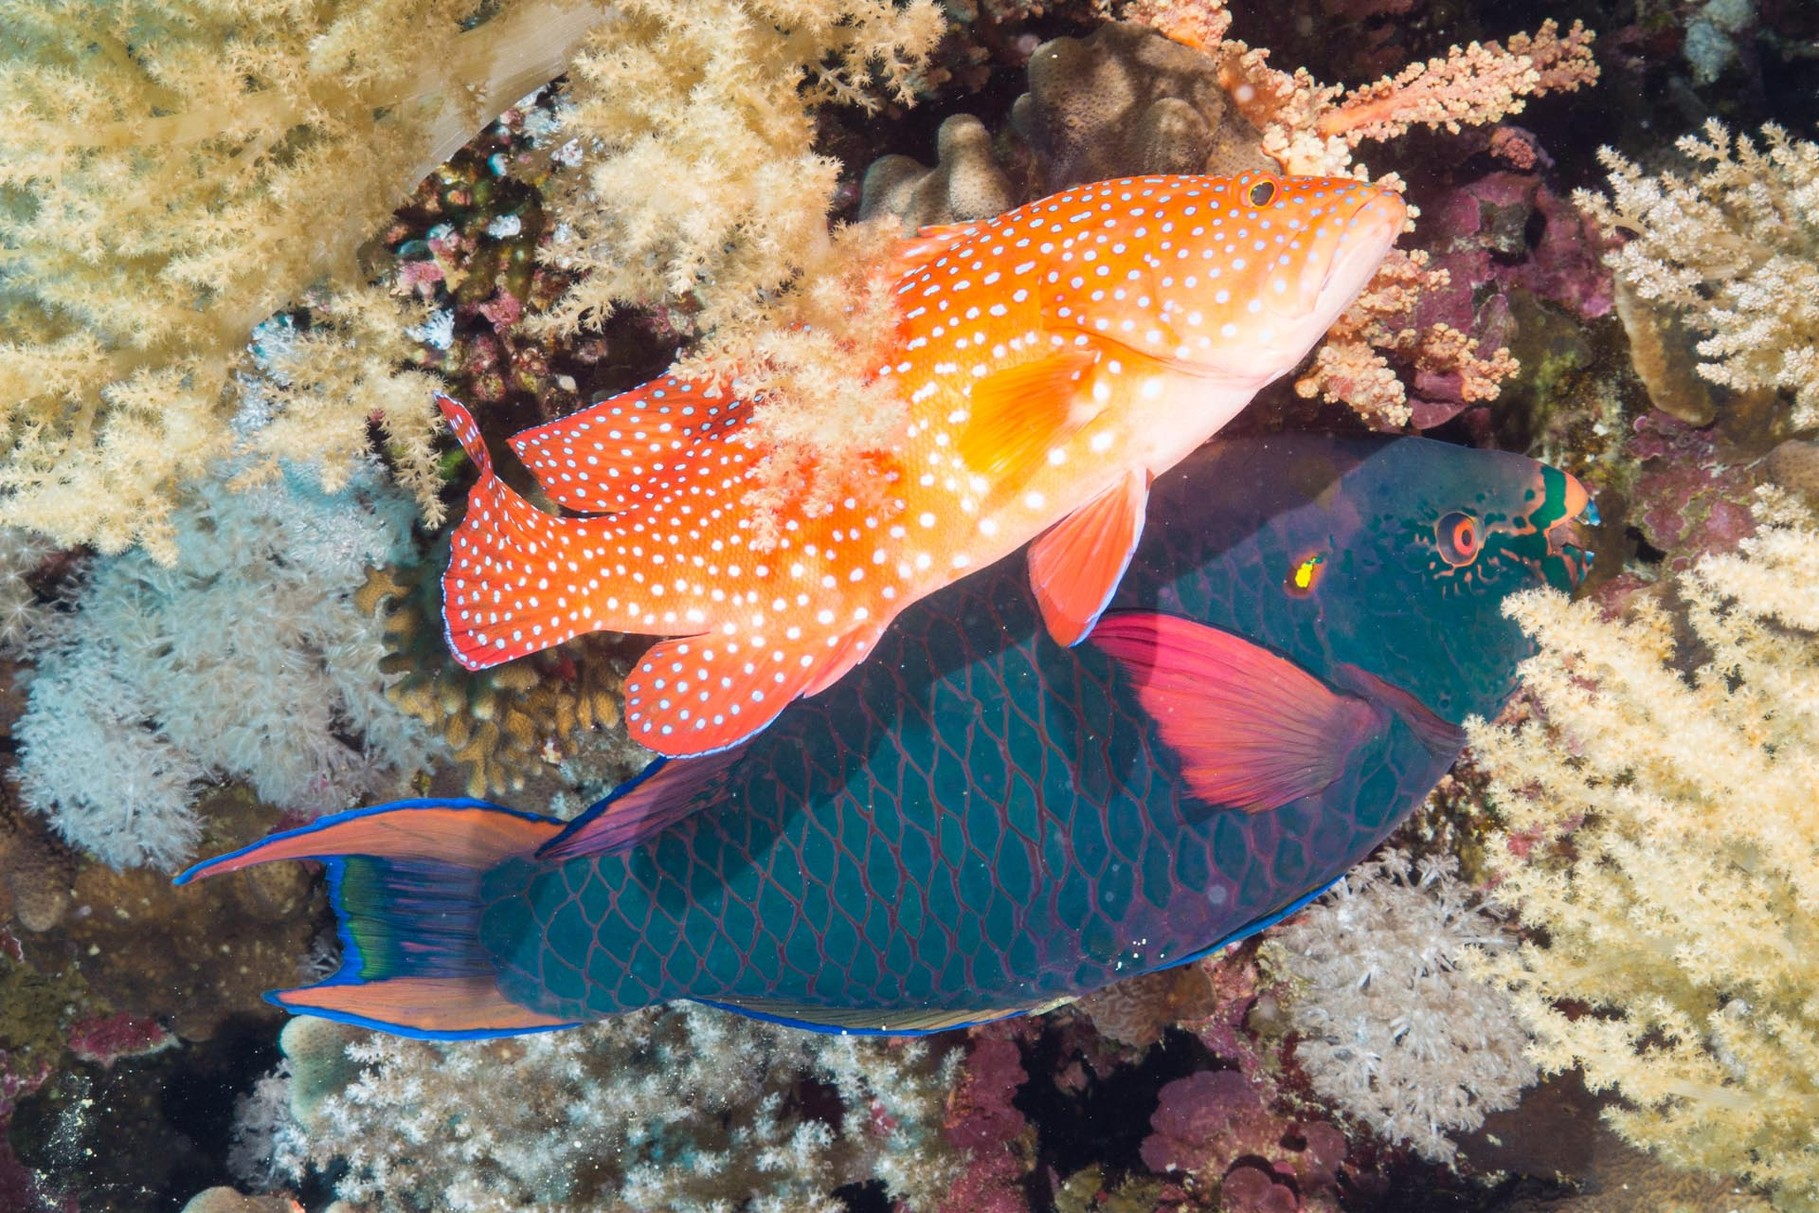 Grouper and Parrotfish